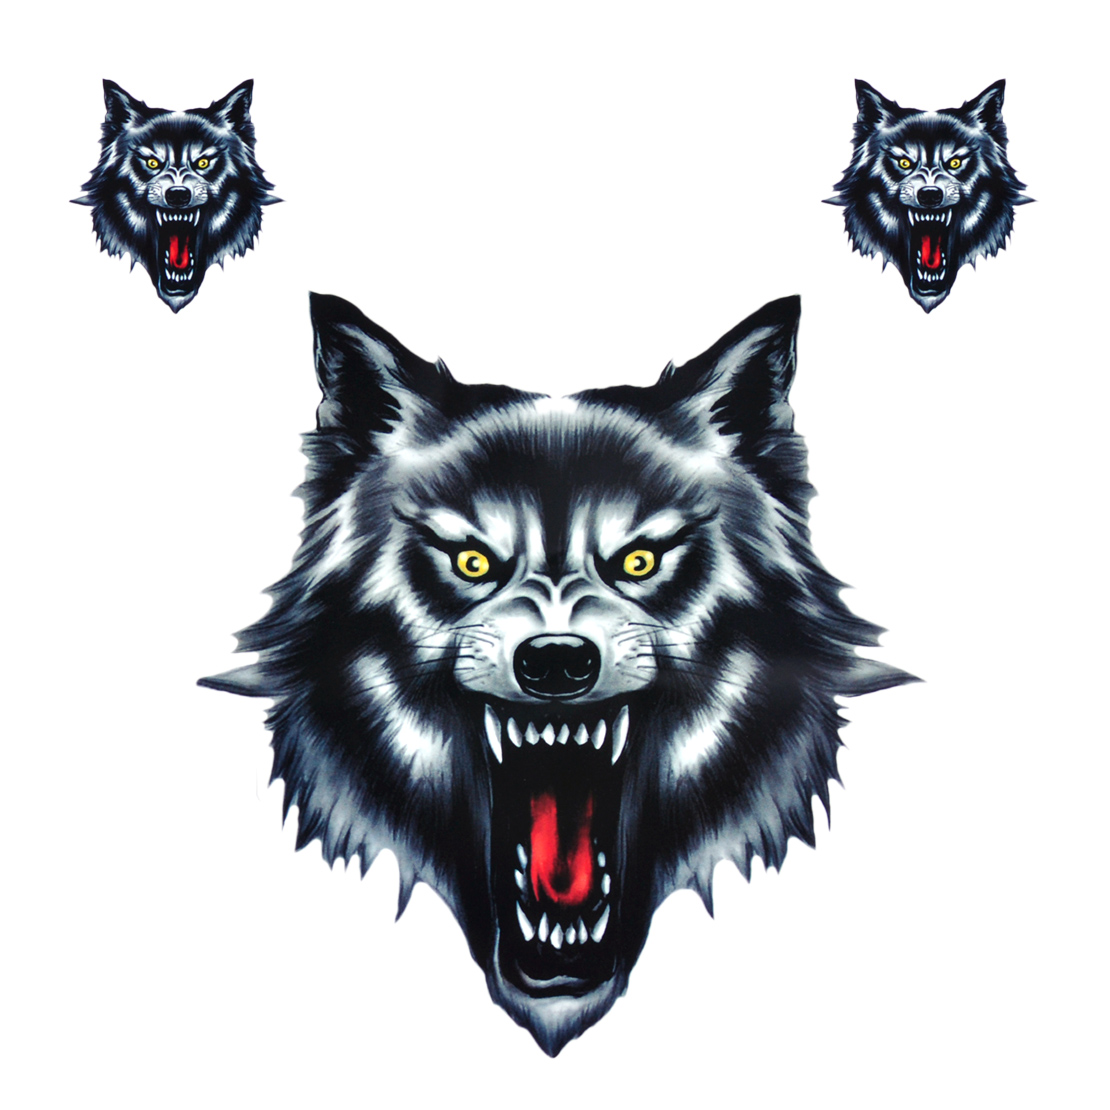 DWCX Vinyl Wolf Head Decals Waterproof Funny Self-adhesive Sticker for Motorcycle Motorbike Car Door Stickers Truck Helmet Decor 10m super strong waterproof self adhesive double sided foam tape for car trim scotch